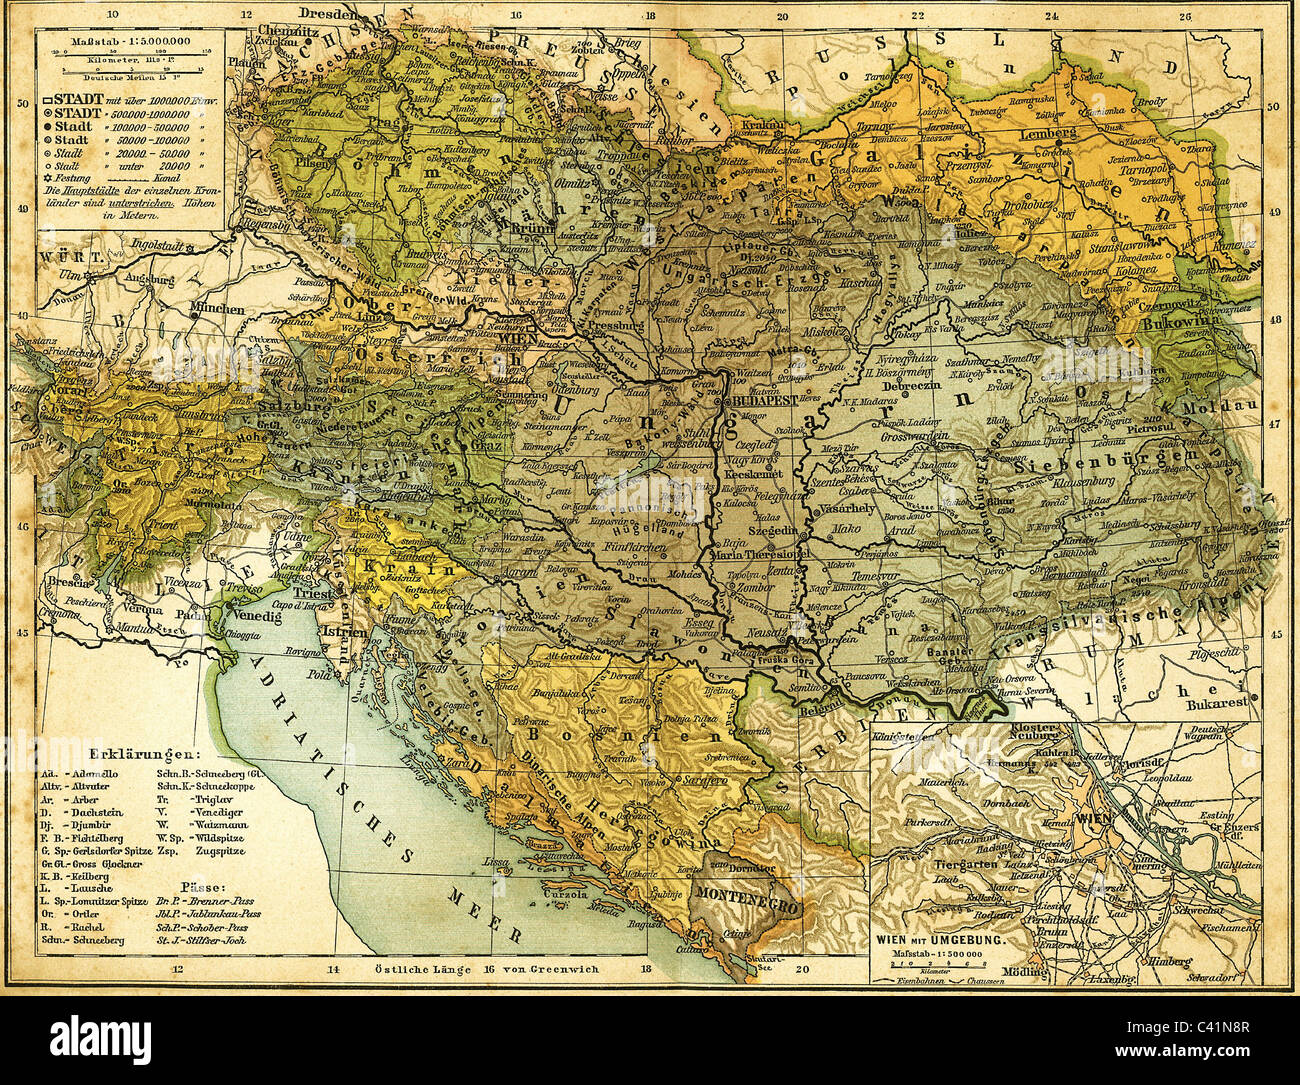 cartography, map, Austria-Hungary, circa 1910, as well as the Vienna and its surrounding area, from Kuerschners - Stock Image